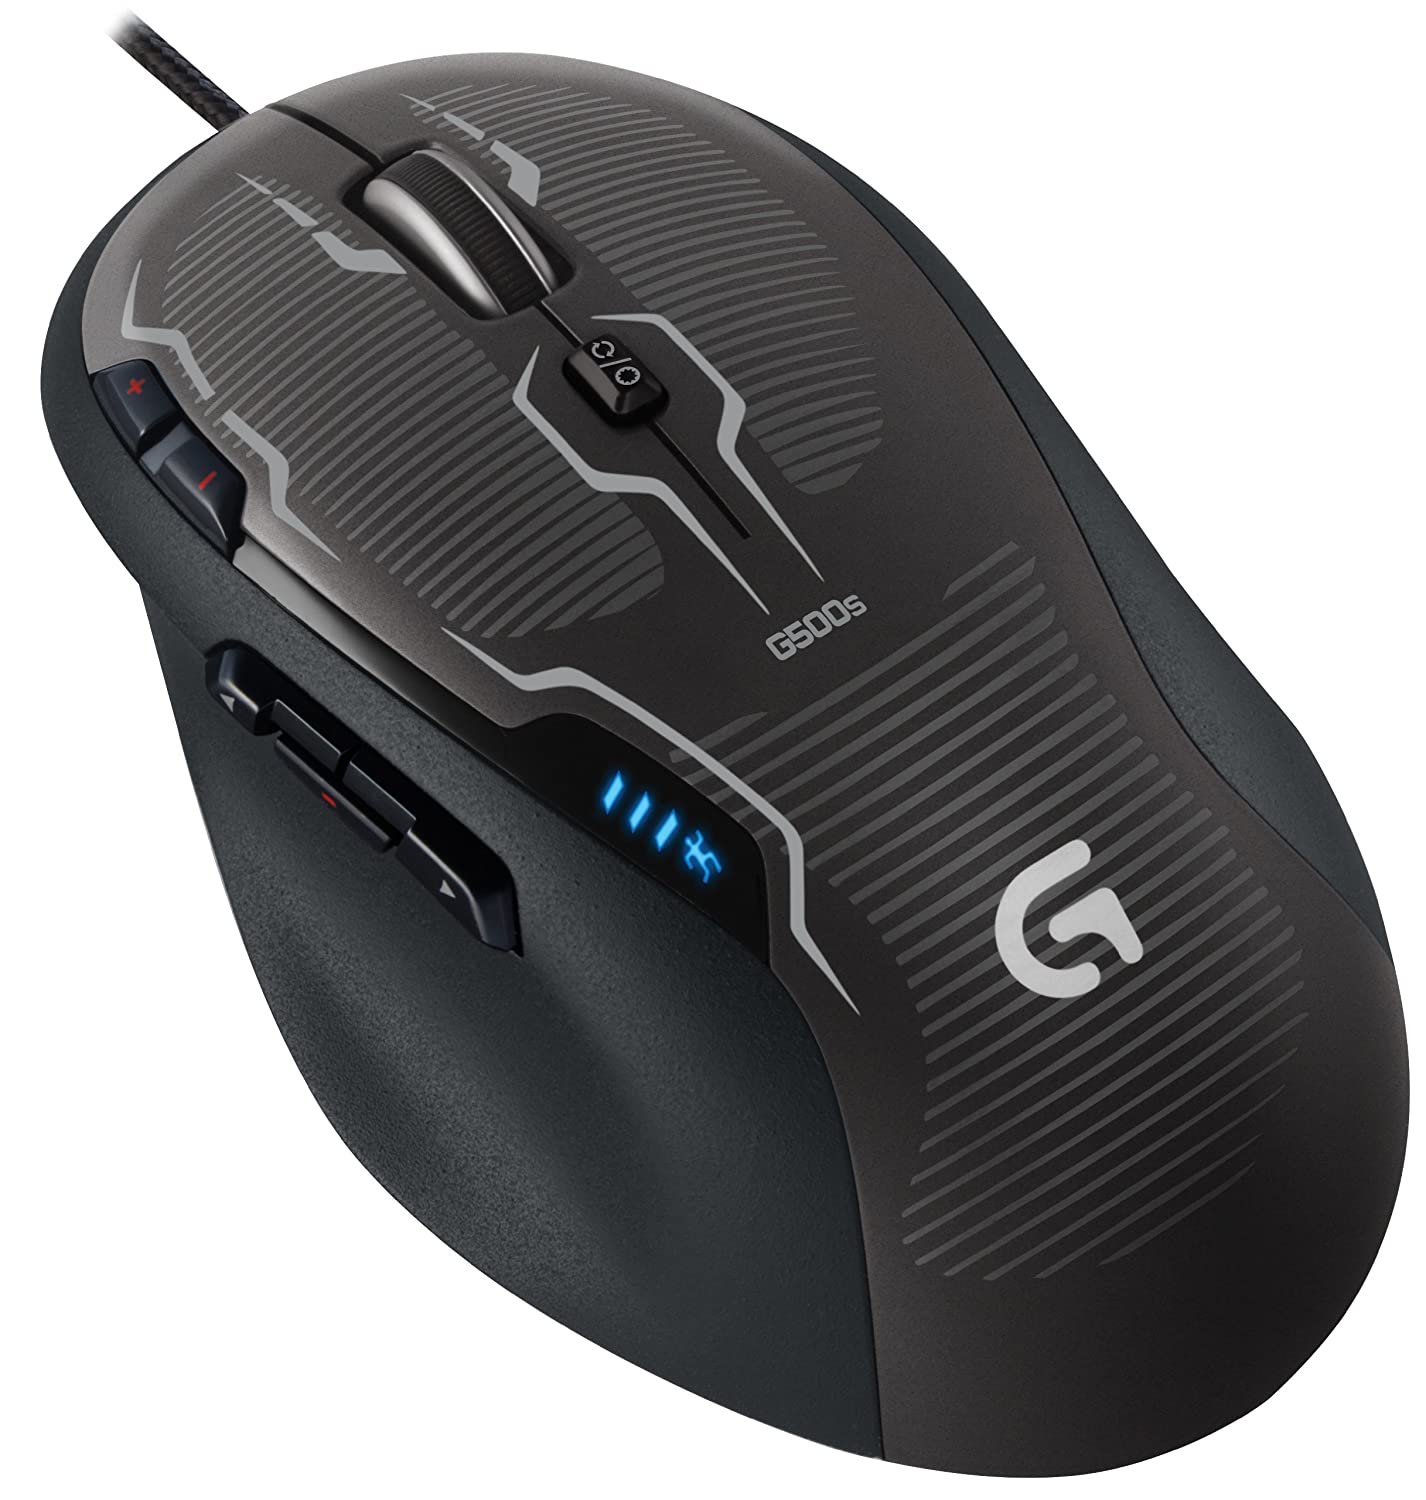 Logitech G500s Laser Gaming Mouse with Adjustable Weight Tuning